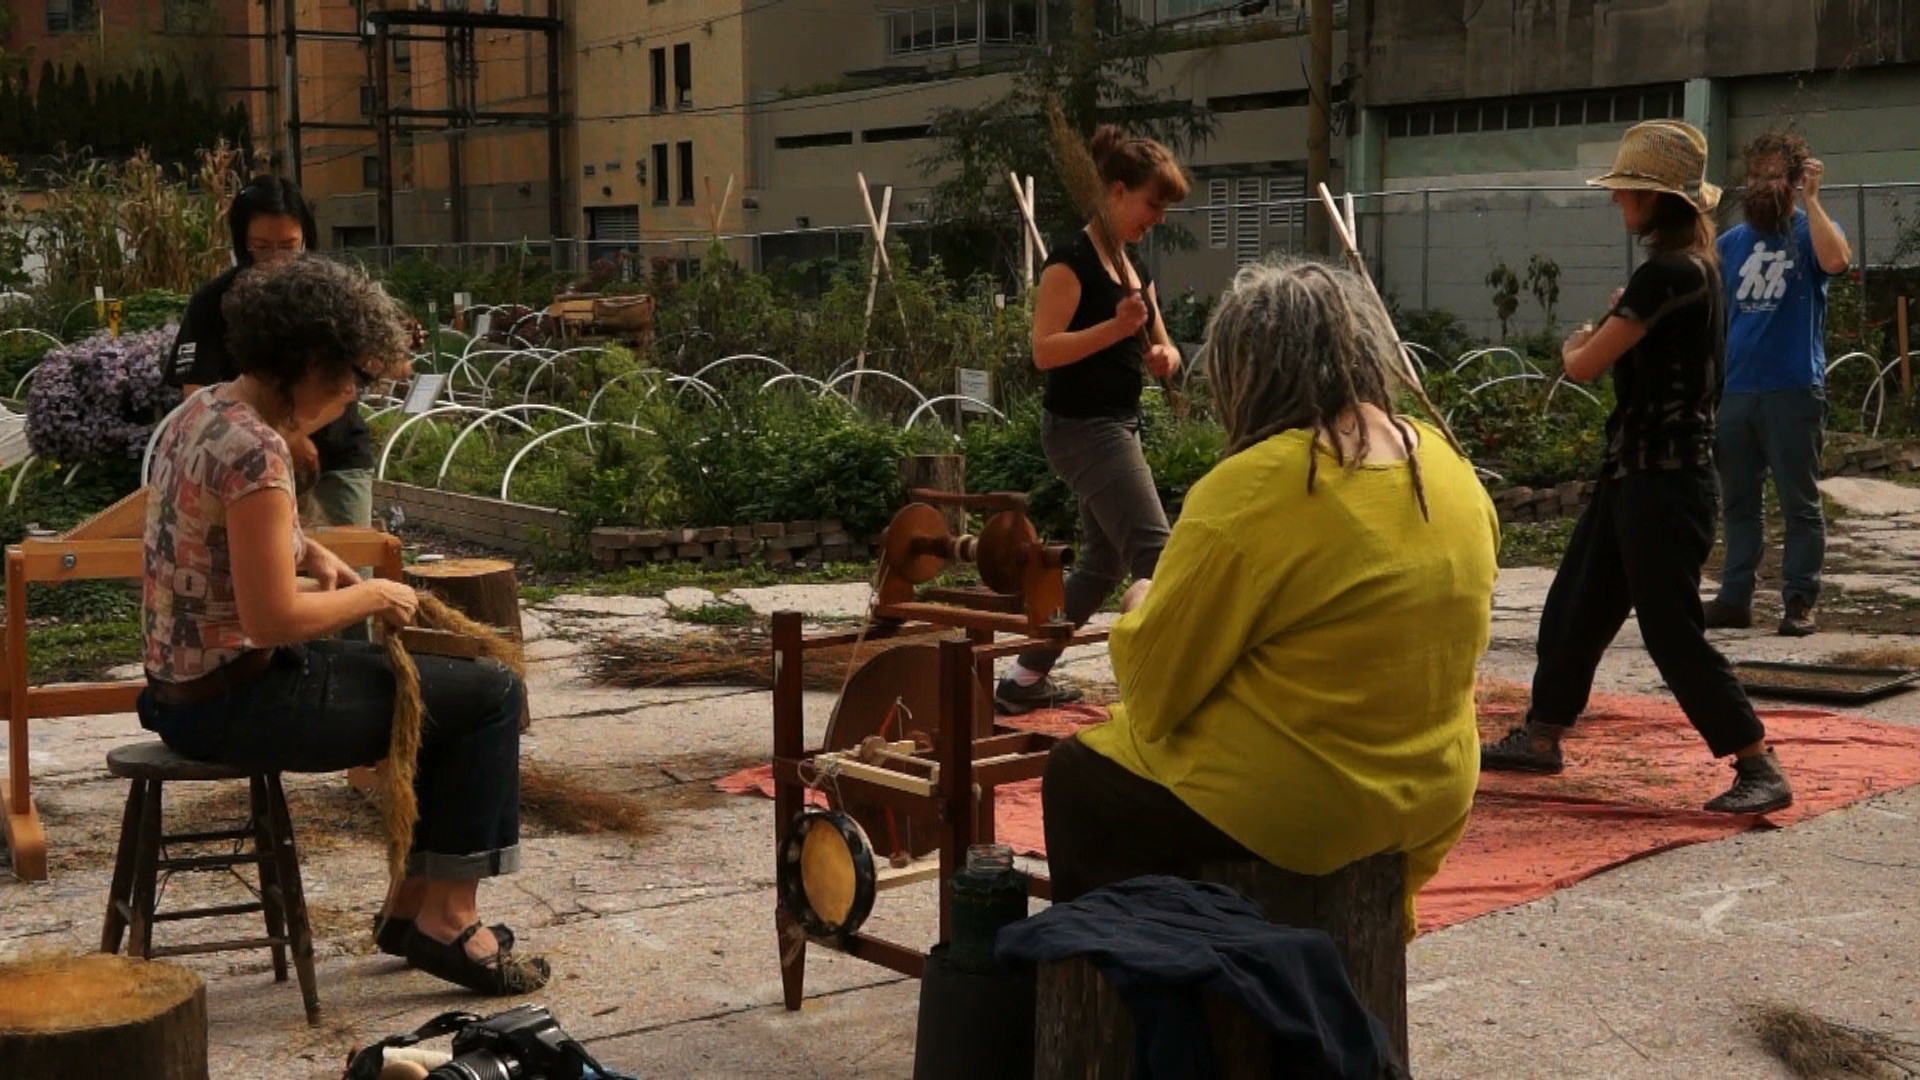 The Urban Cloth Project: Creating a Social Fabric